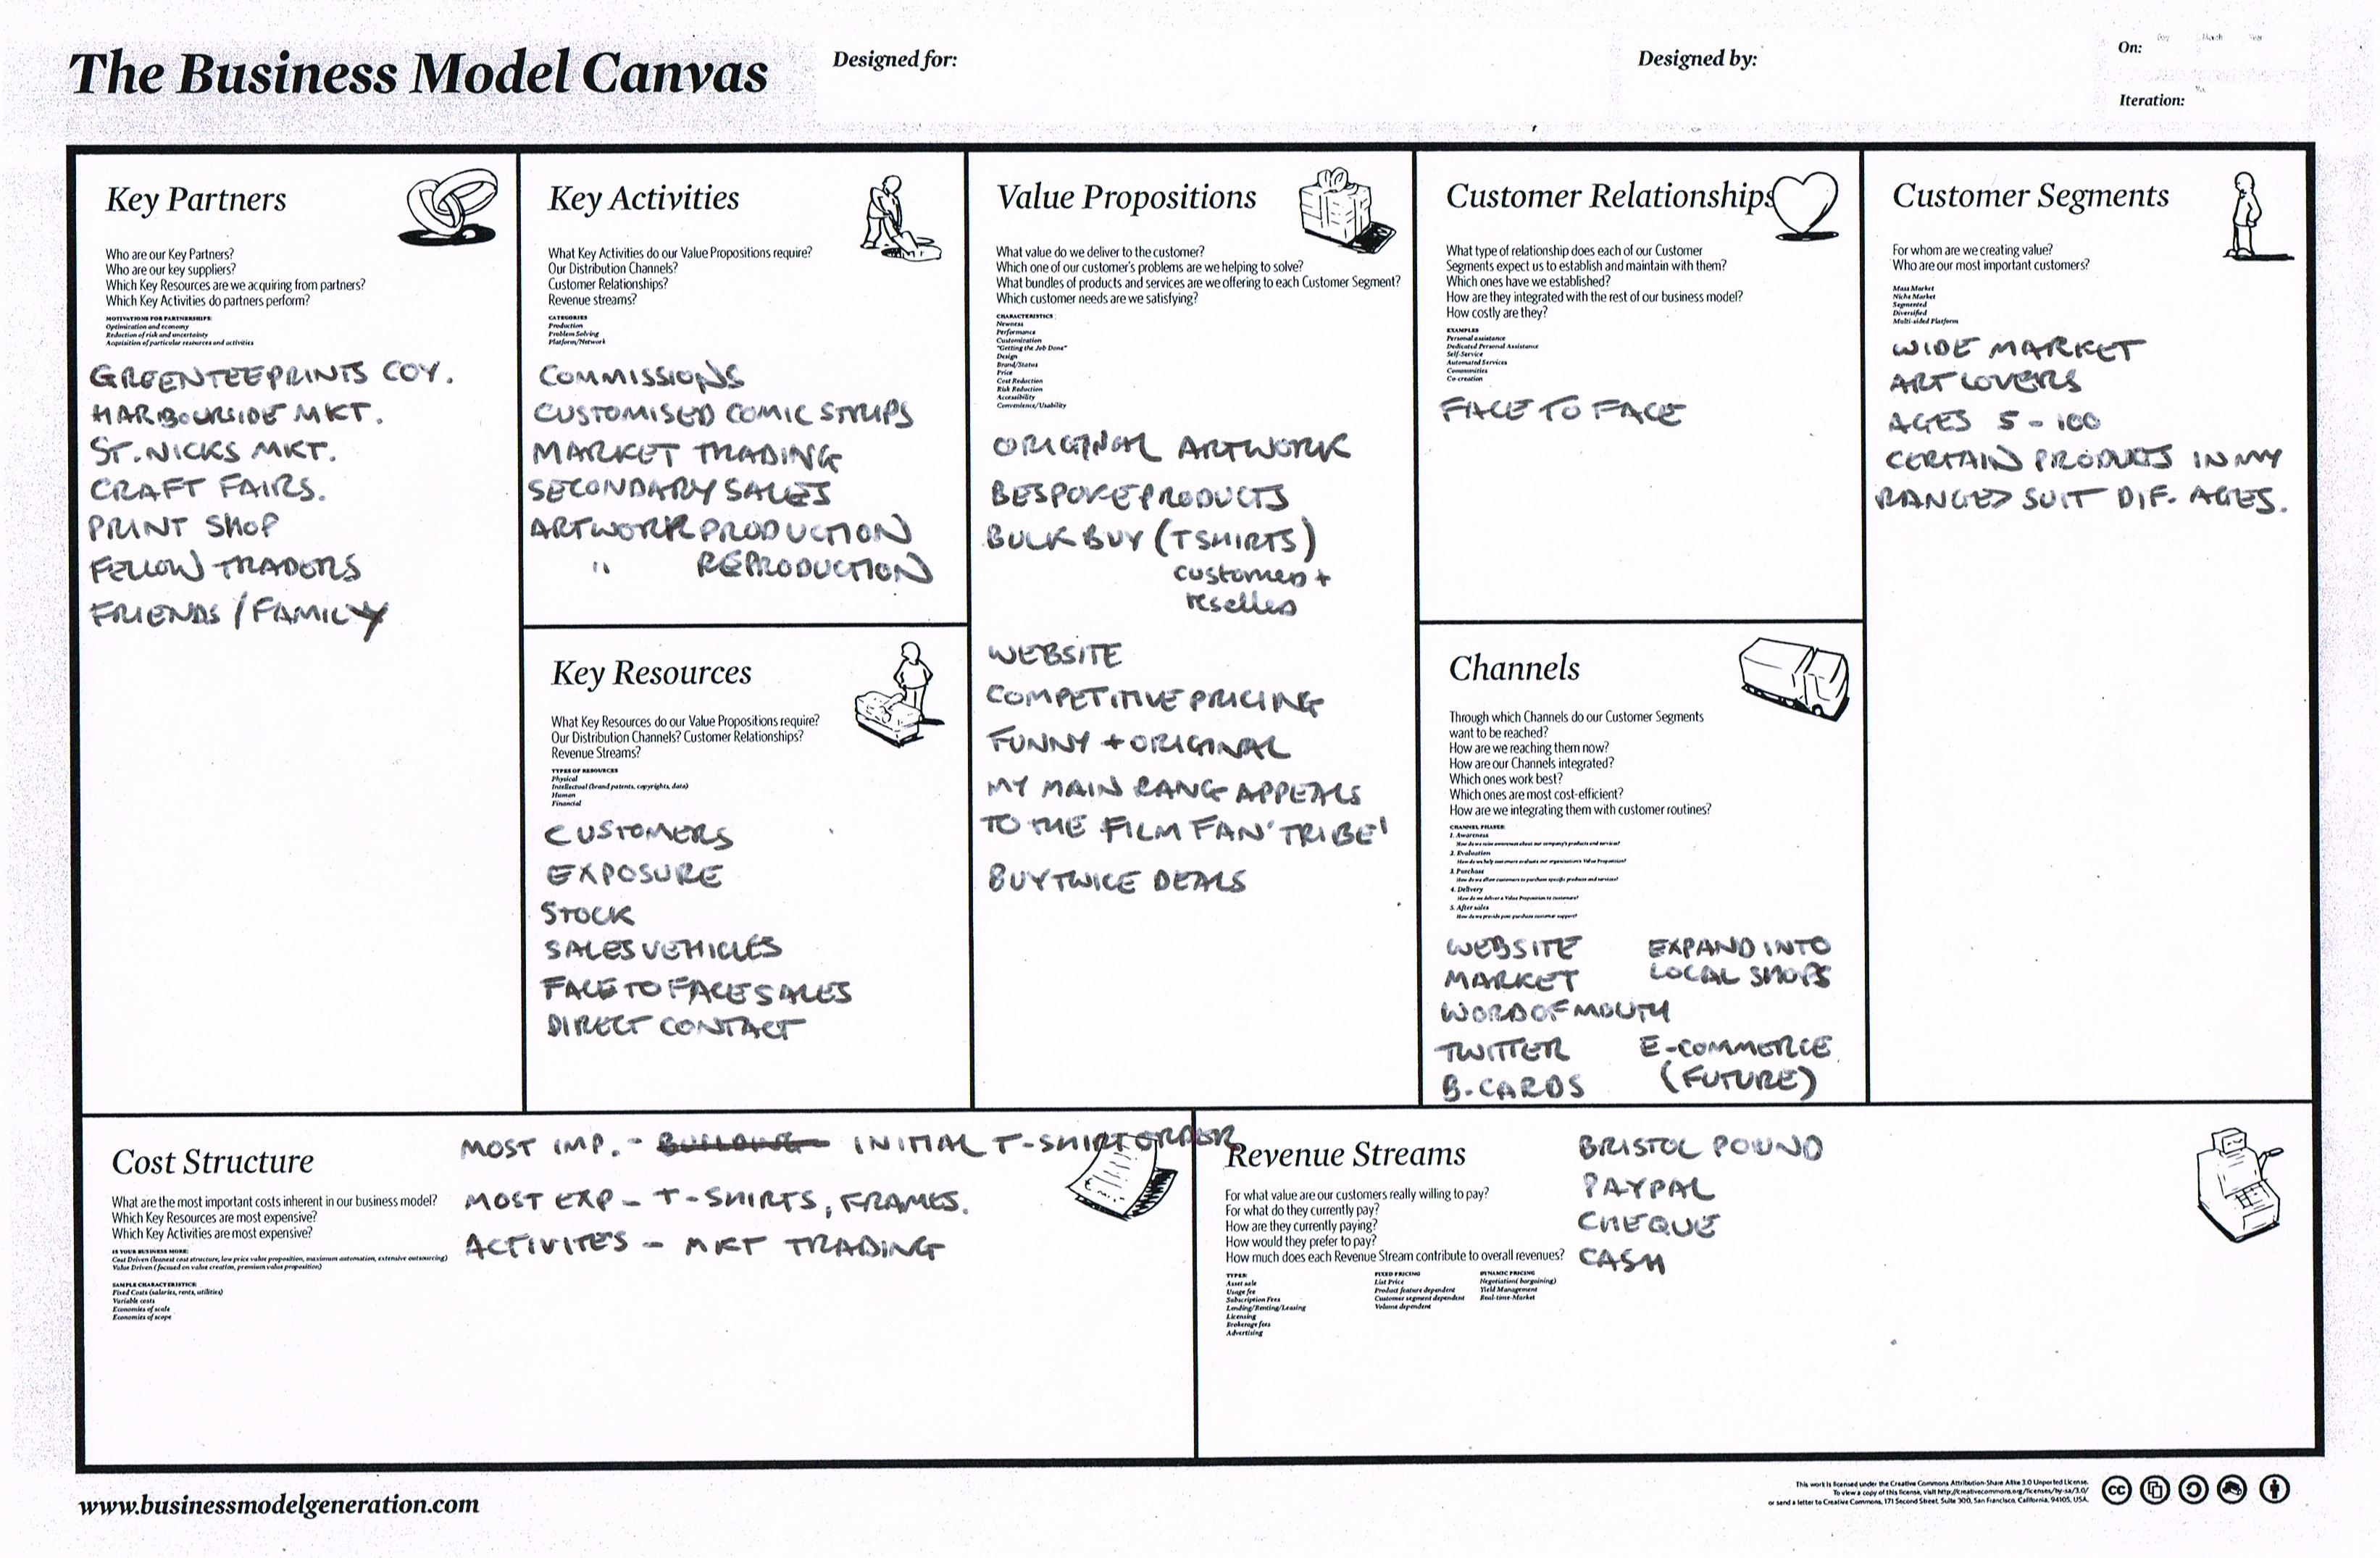 Worksheet The Business Model Canvas